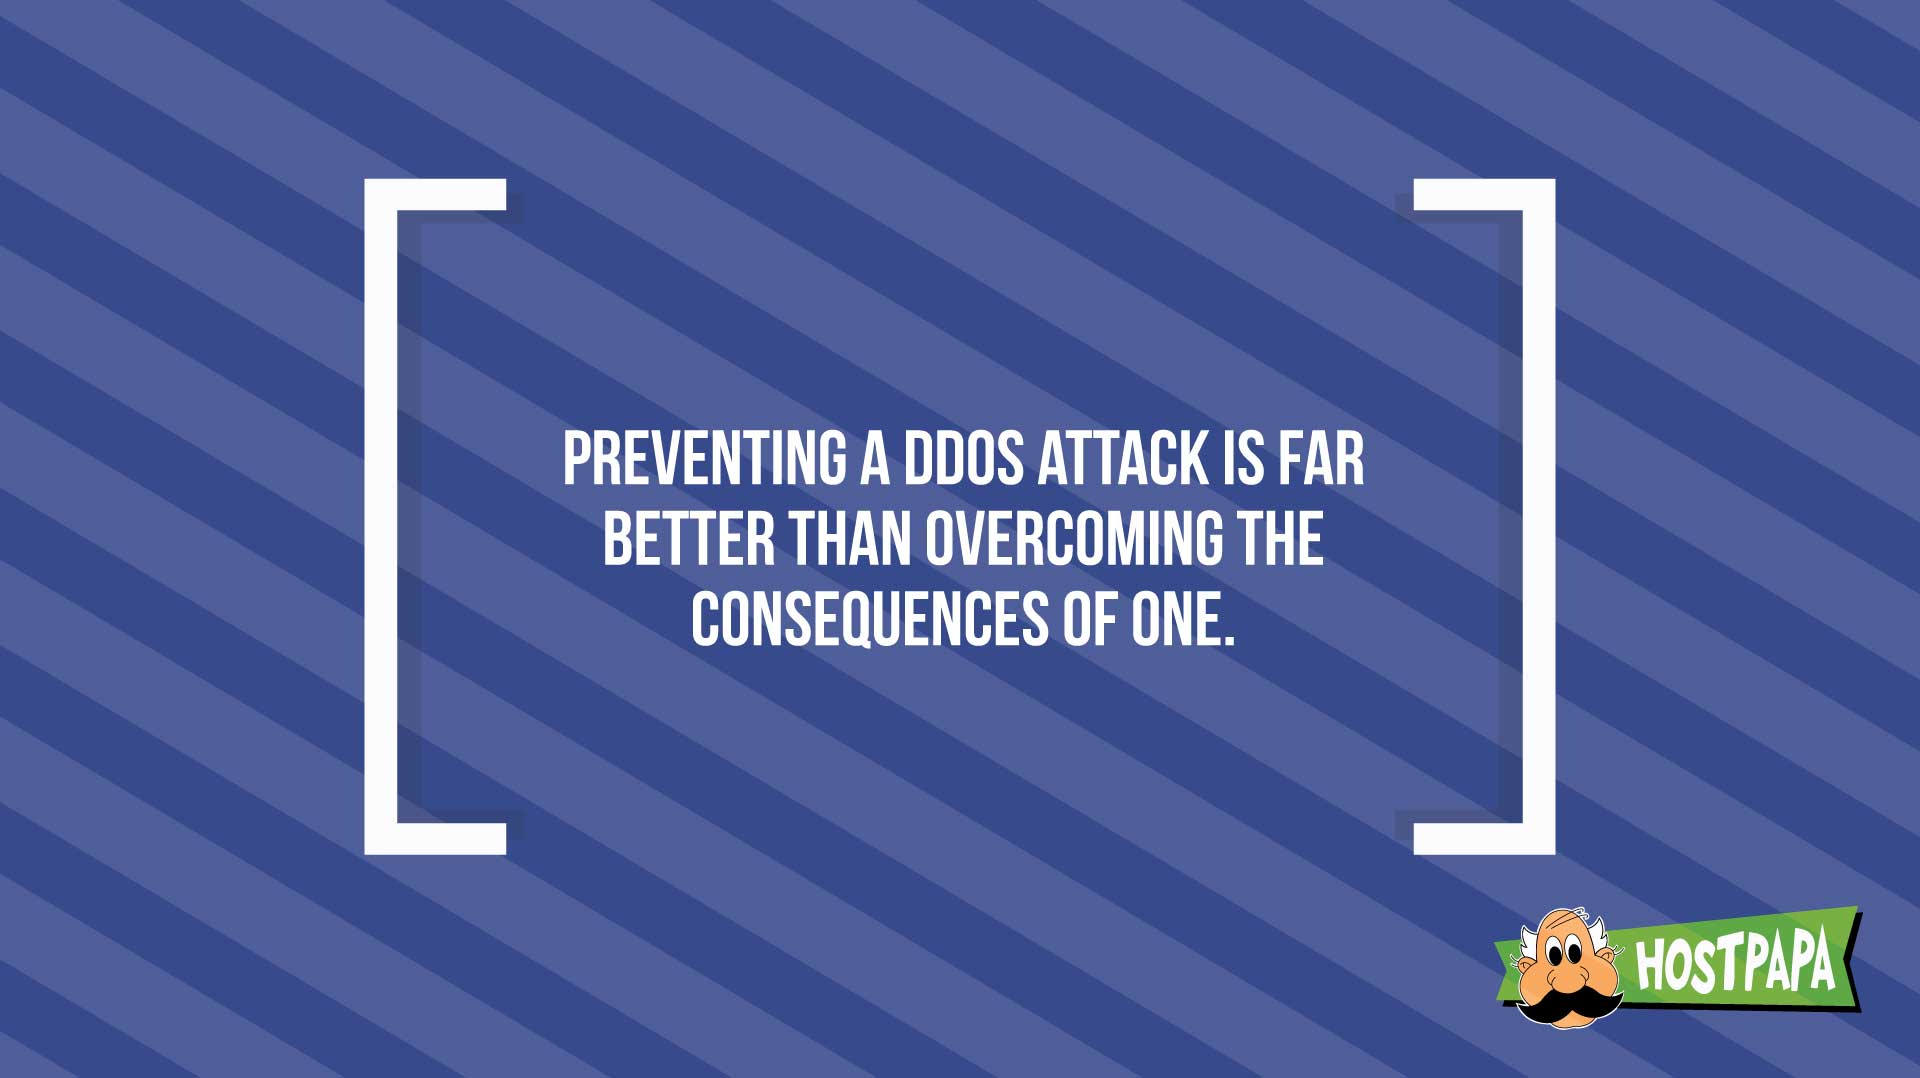 Preventing a DDoS attack is far better than overcoming the consequences of one